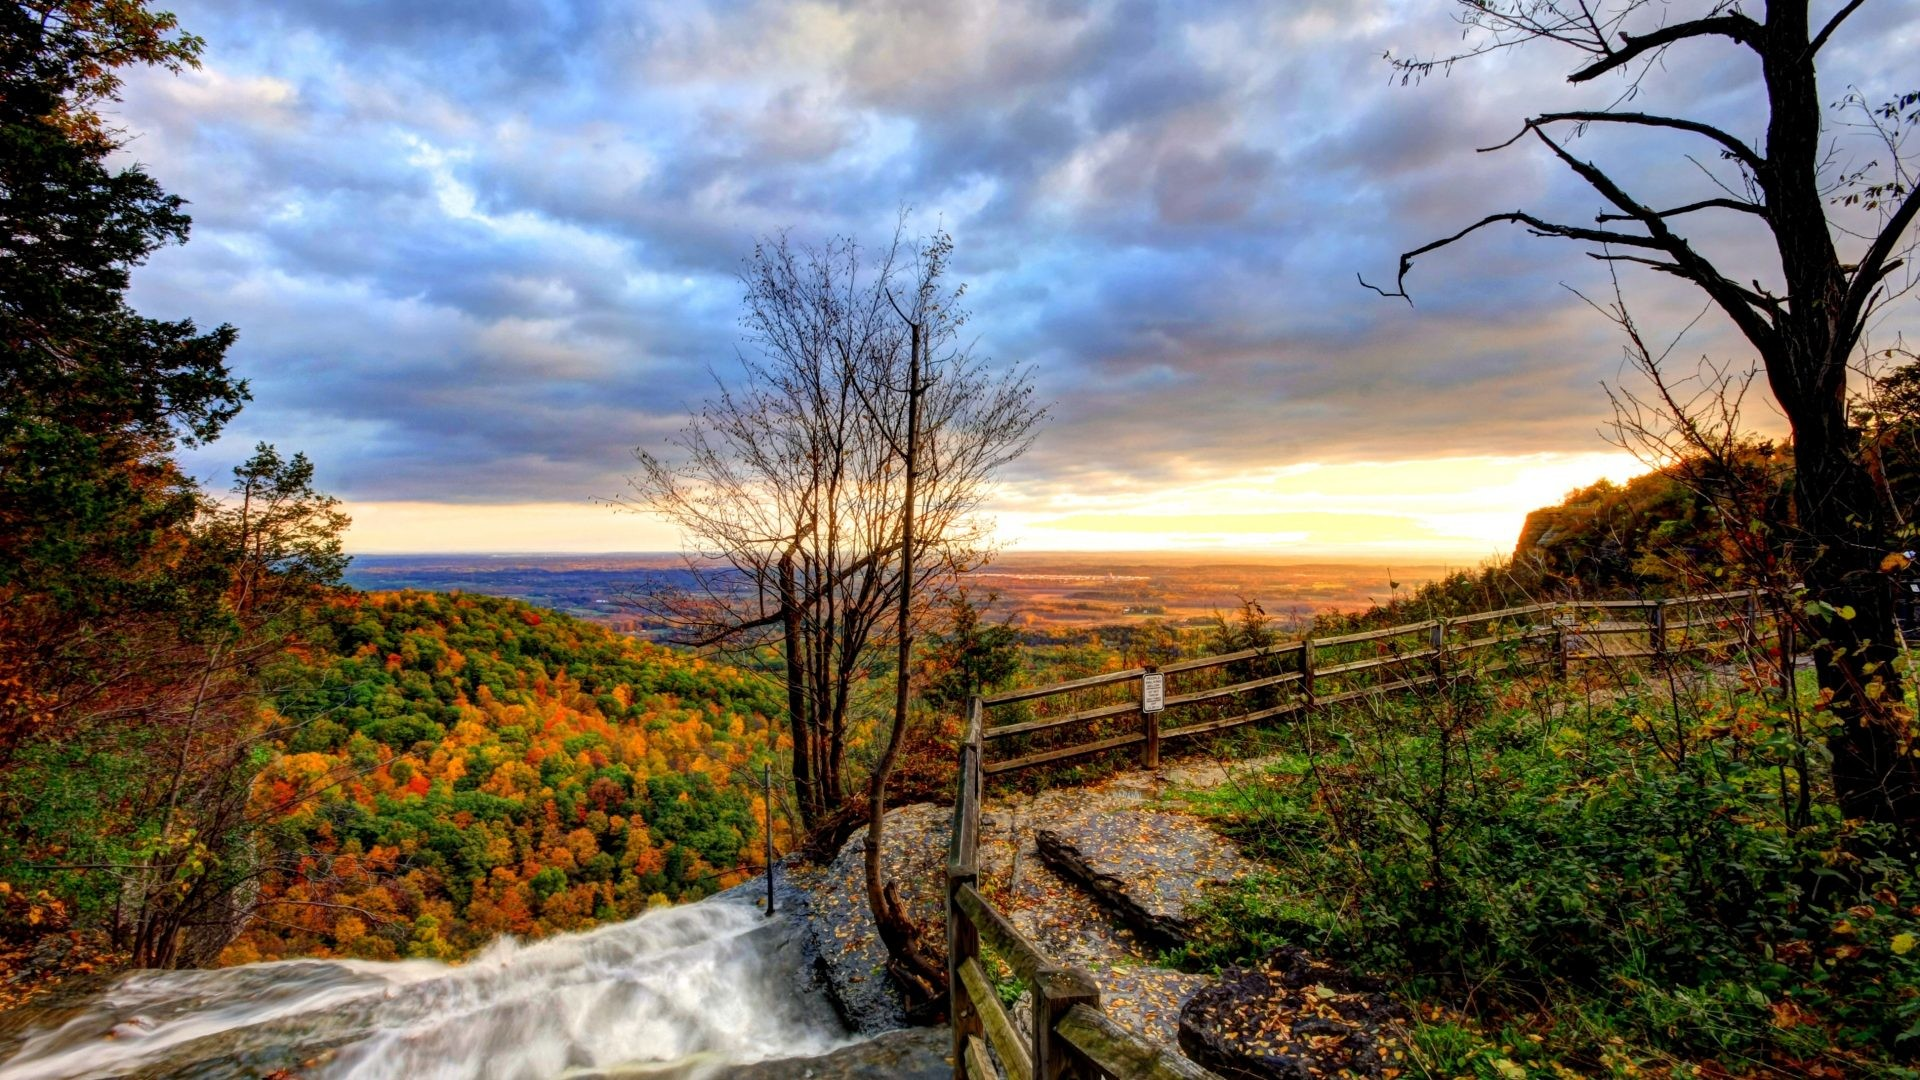 Place Tag – Nature Great Scenery Nice Beauty Photography Amazing Panorama  Cool Beautiful Colors Lovely Water